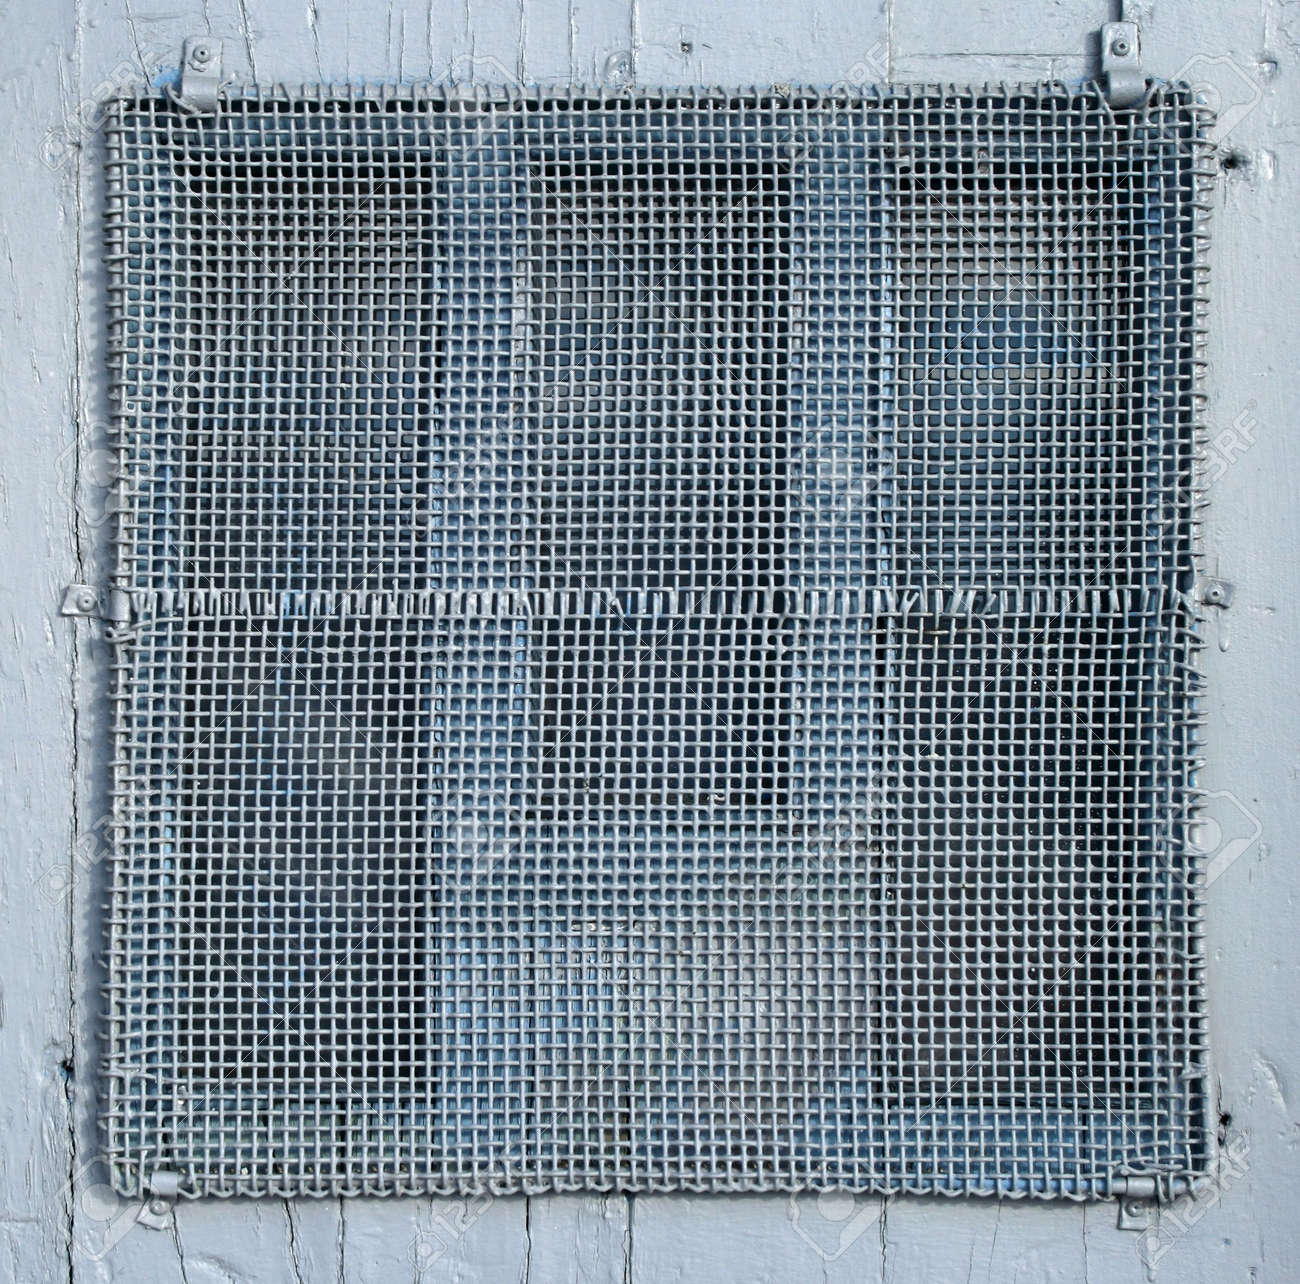 Painted Wire Mesh Covering The Window Of The Old Door. Stock Photo   831574